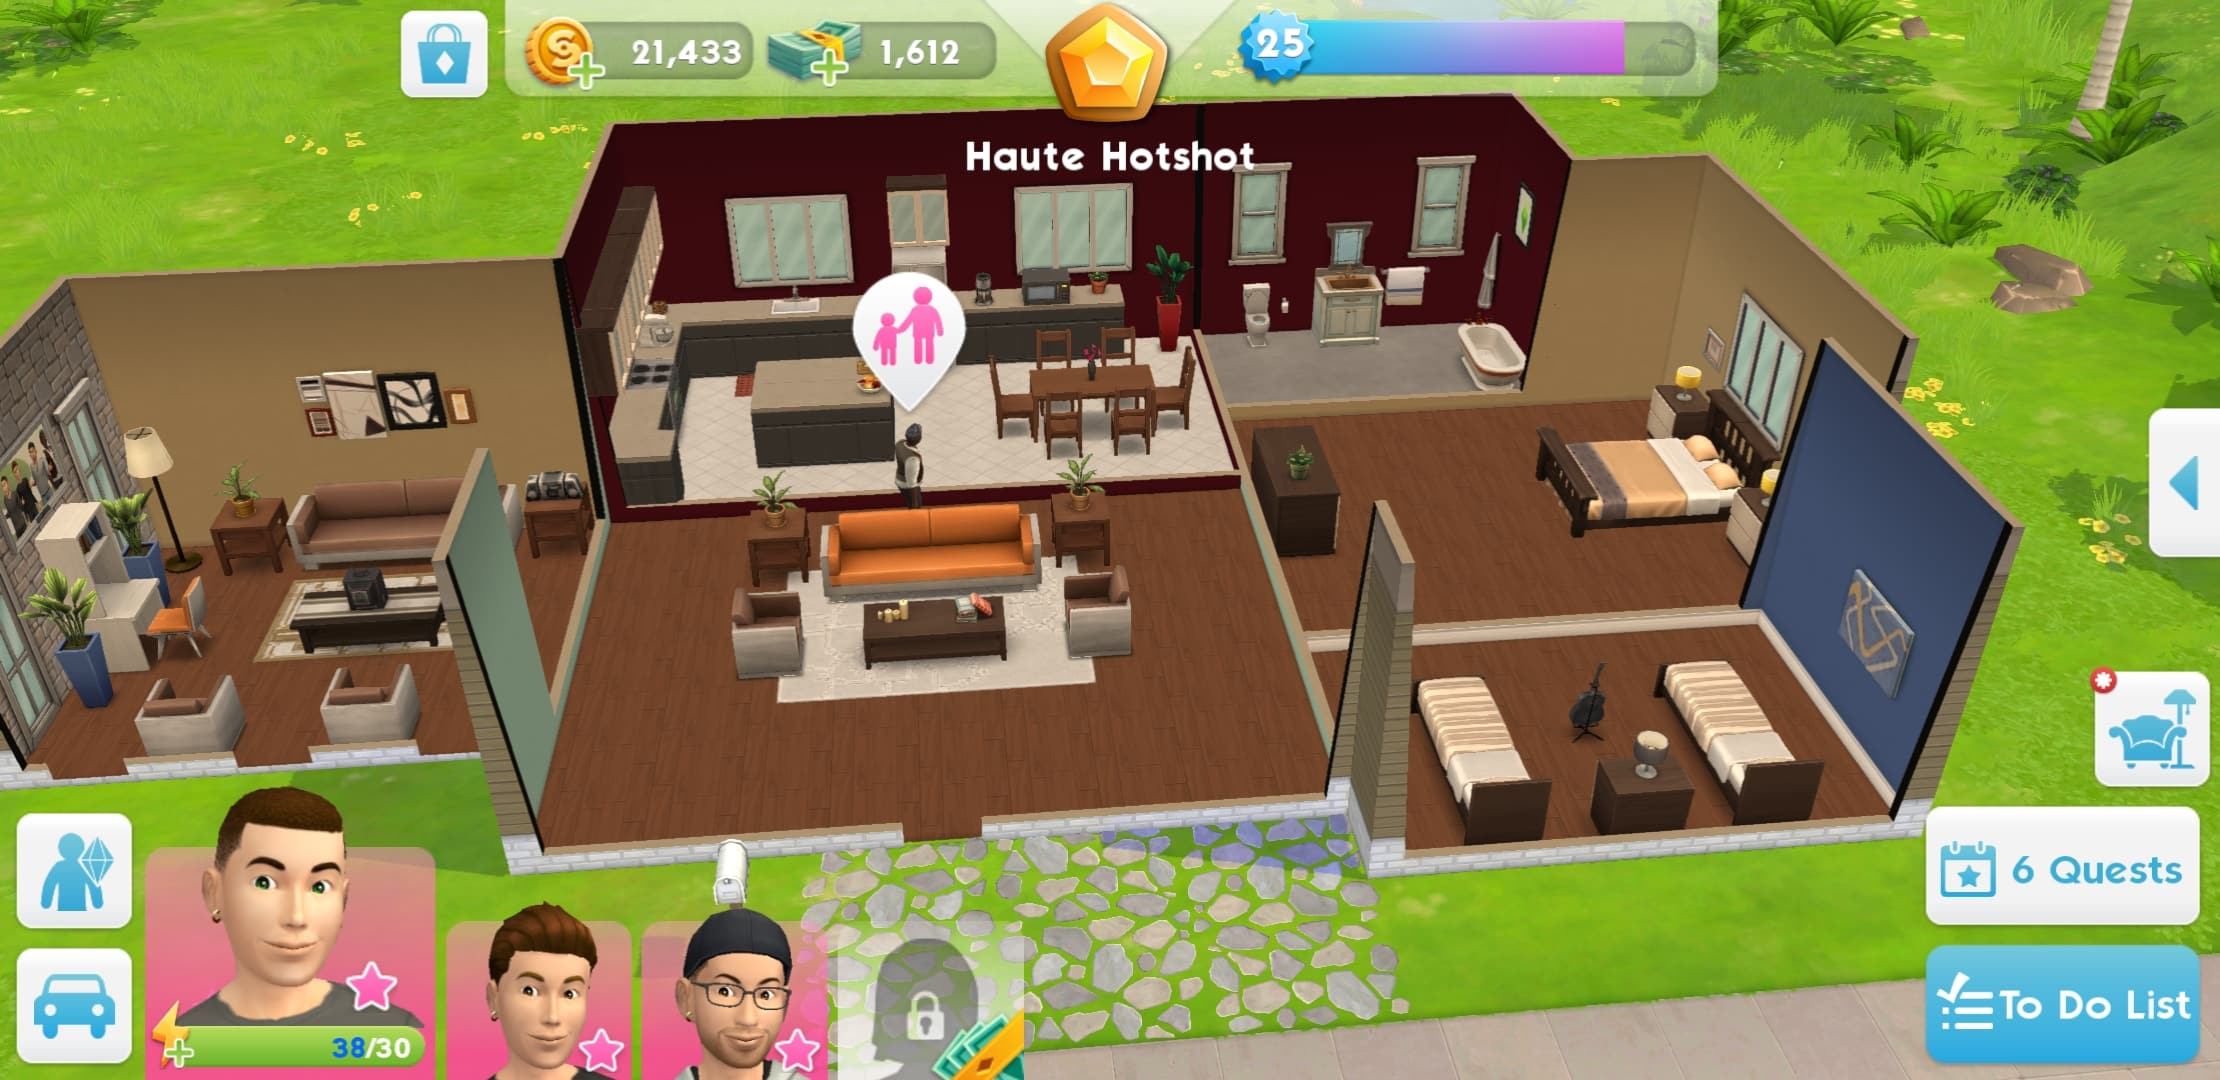 Download The Sims Mobile Mod Apk Unlimited Money Latest